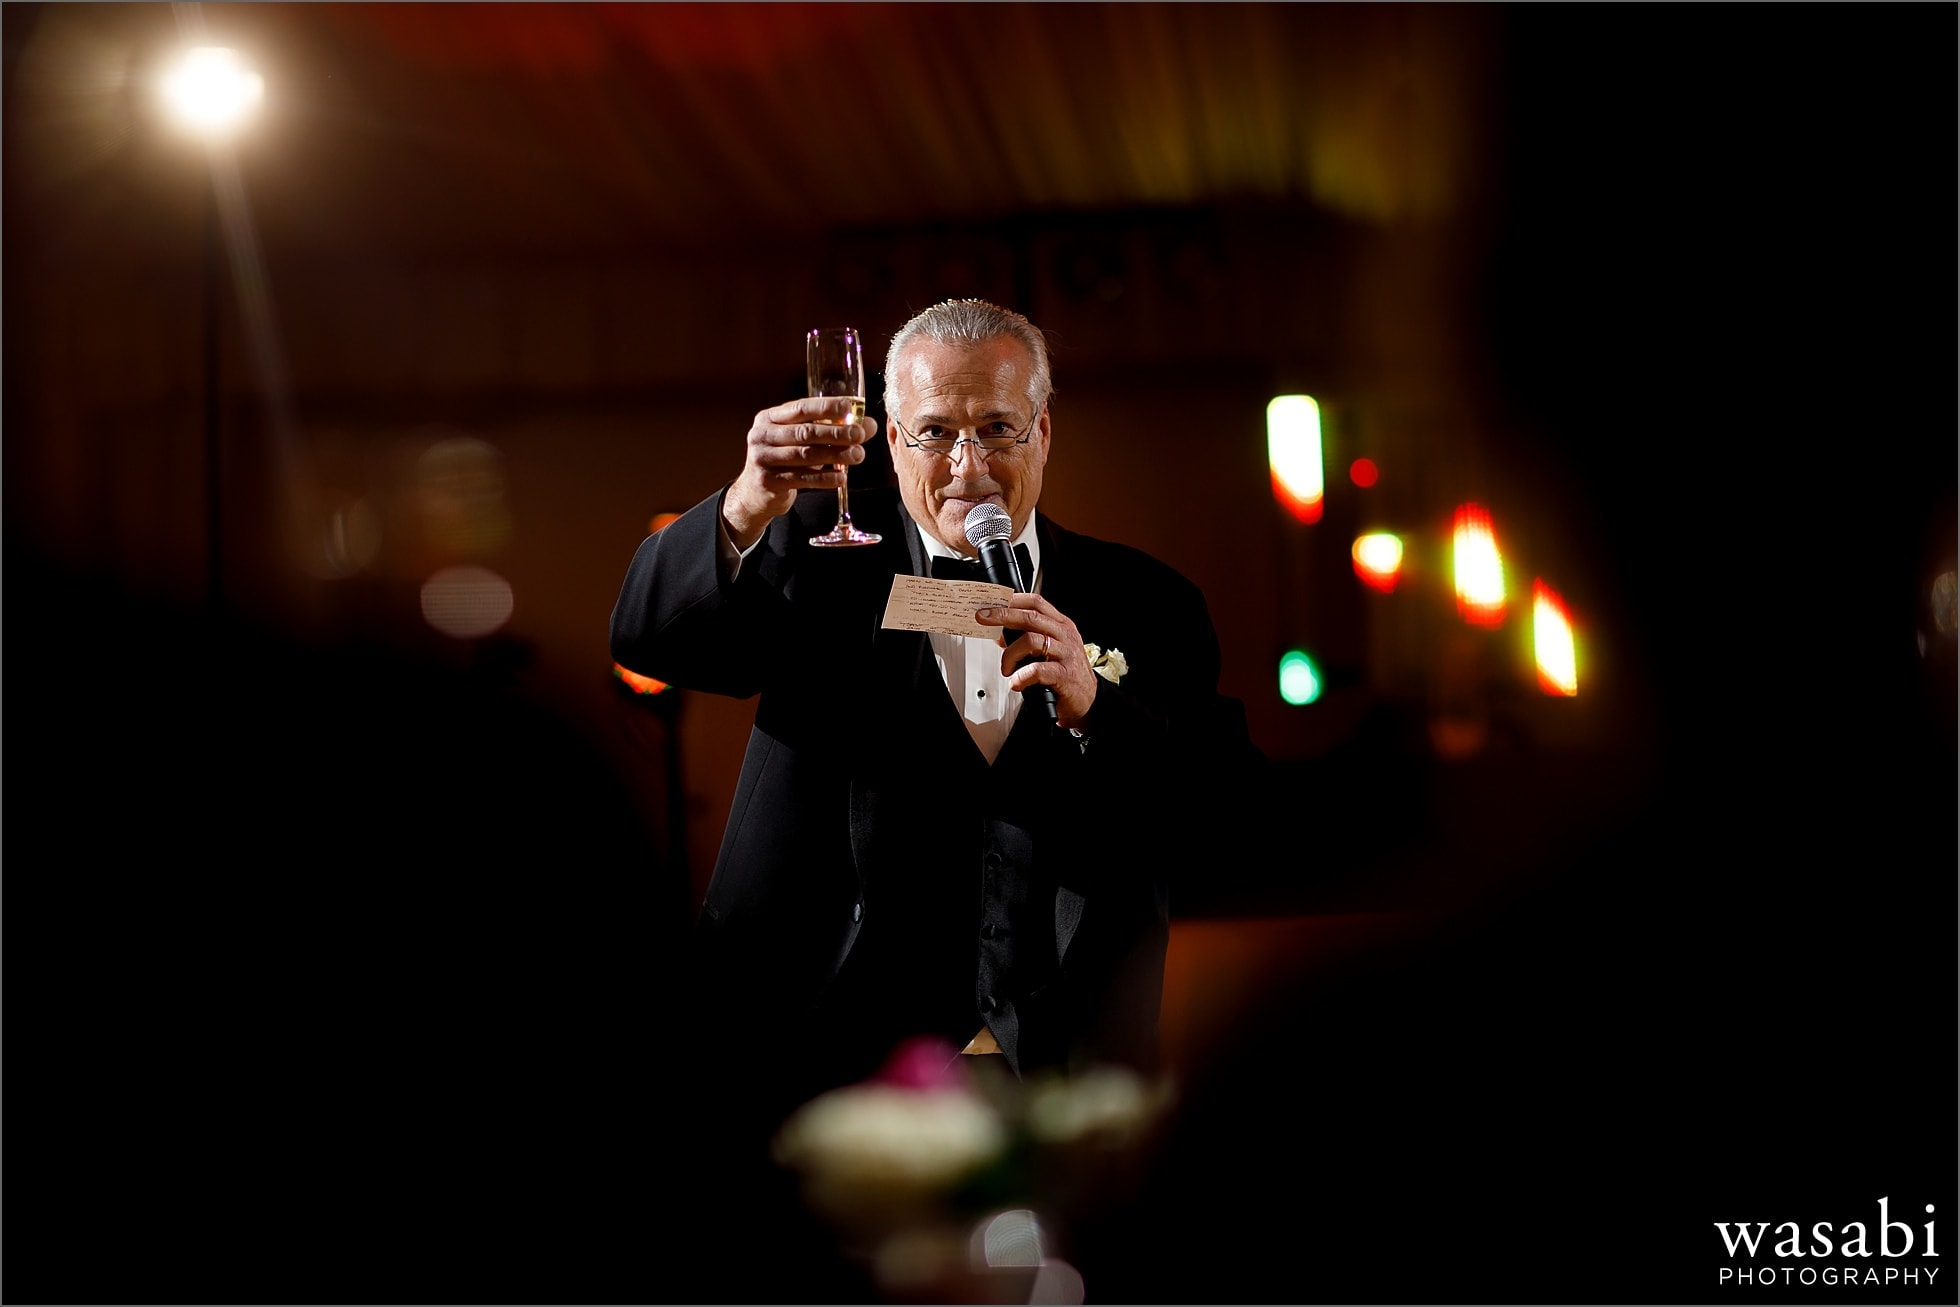 father of the bride gives toast during wedding reception at Chicago Marriott Lincolnshire Resort